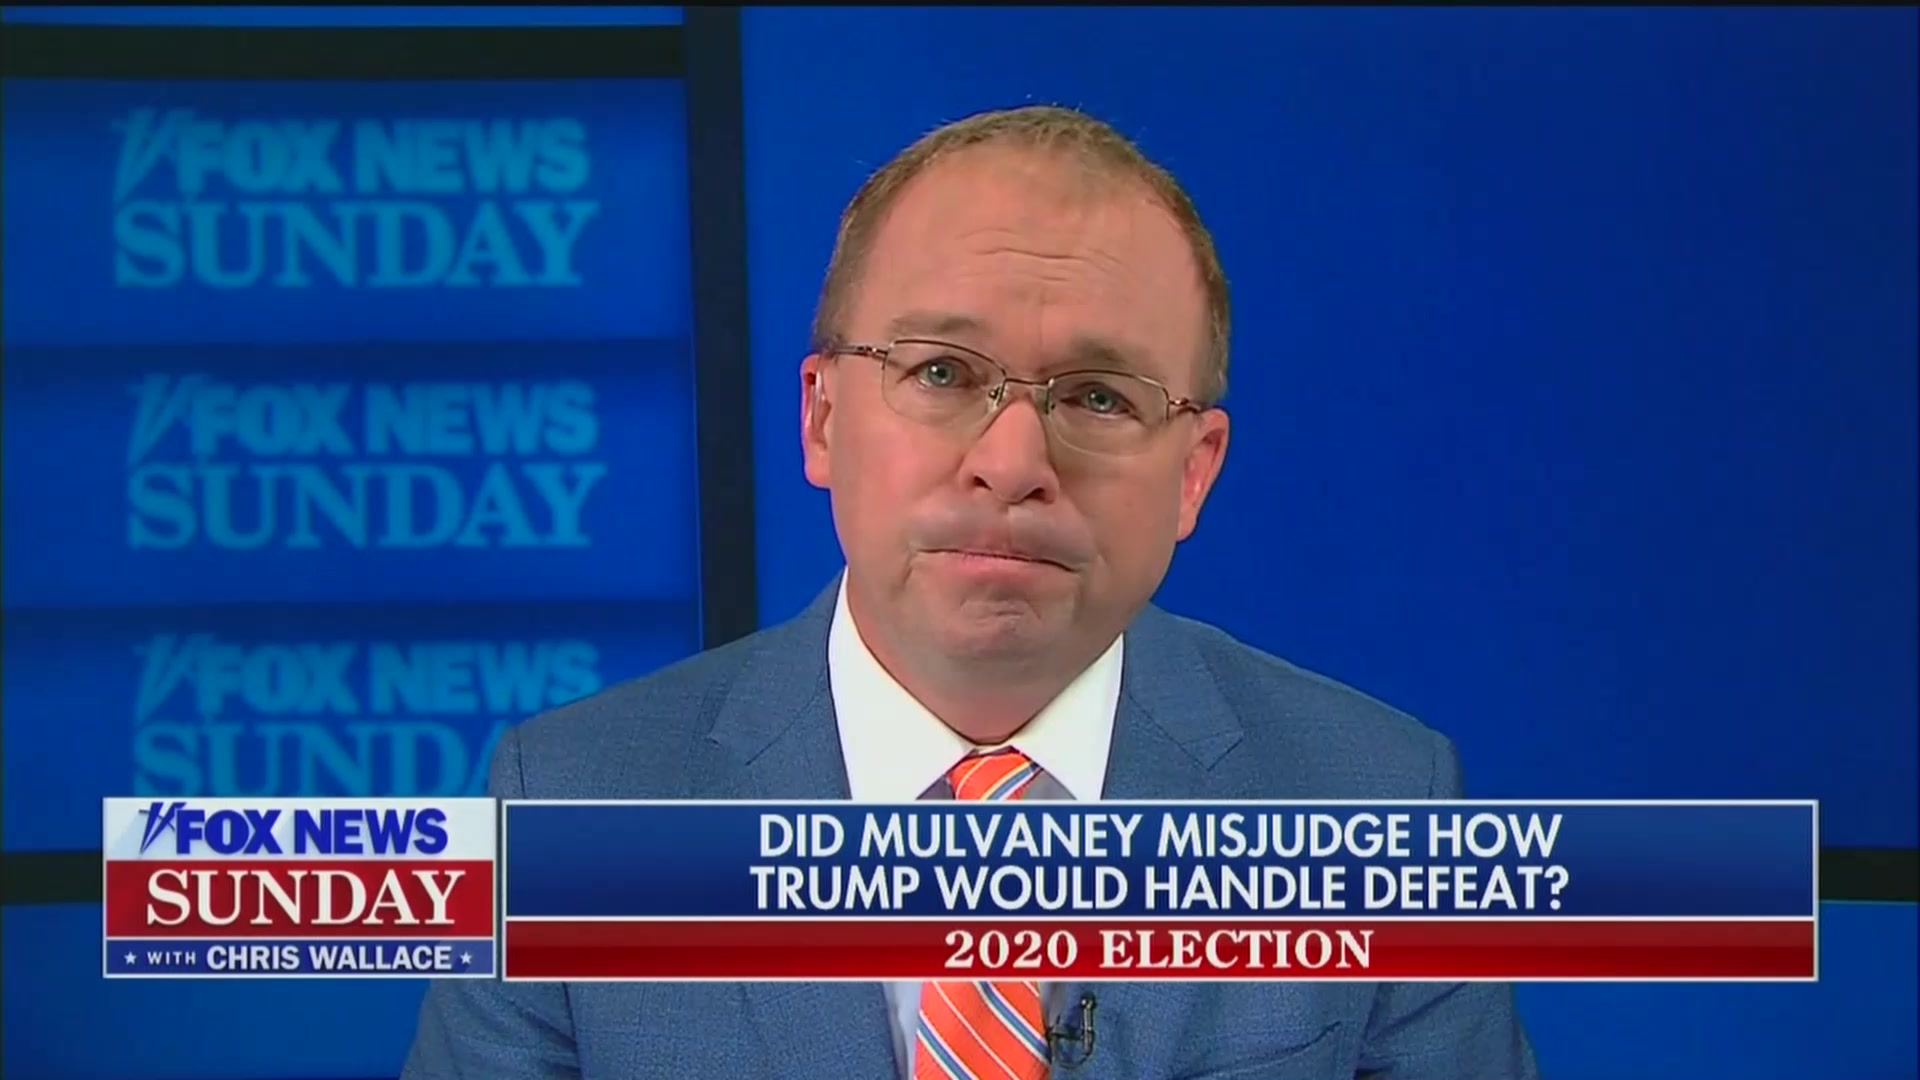 Former Chief of Staff Mick Mulvaney Struggles to Explain Op-ed Claiming Trump Would 'Leave in a Presidential Manner'